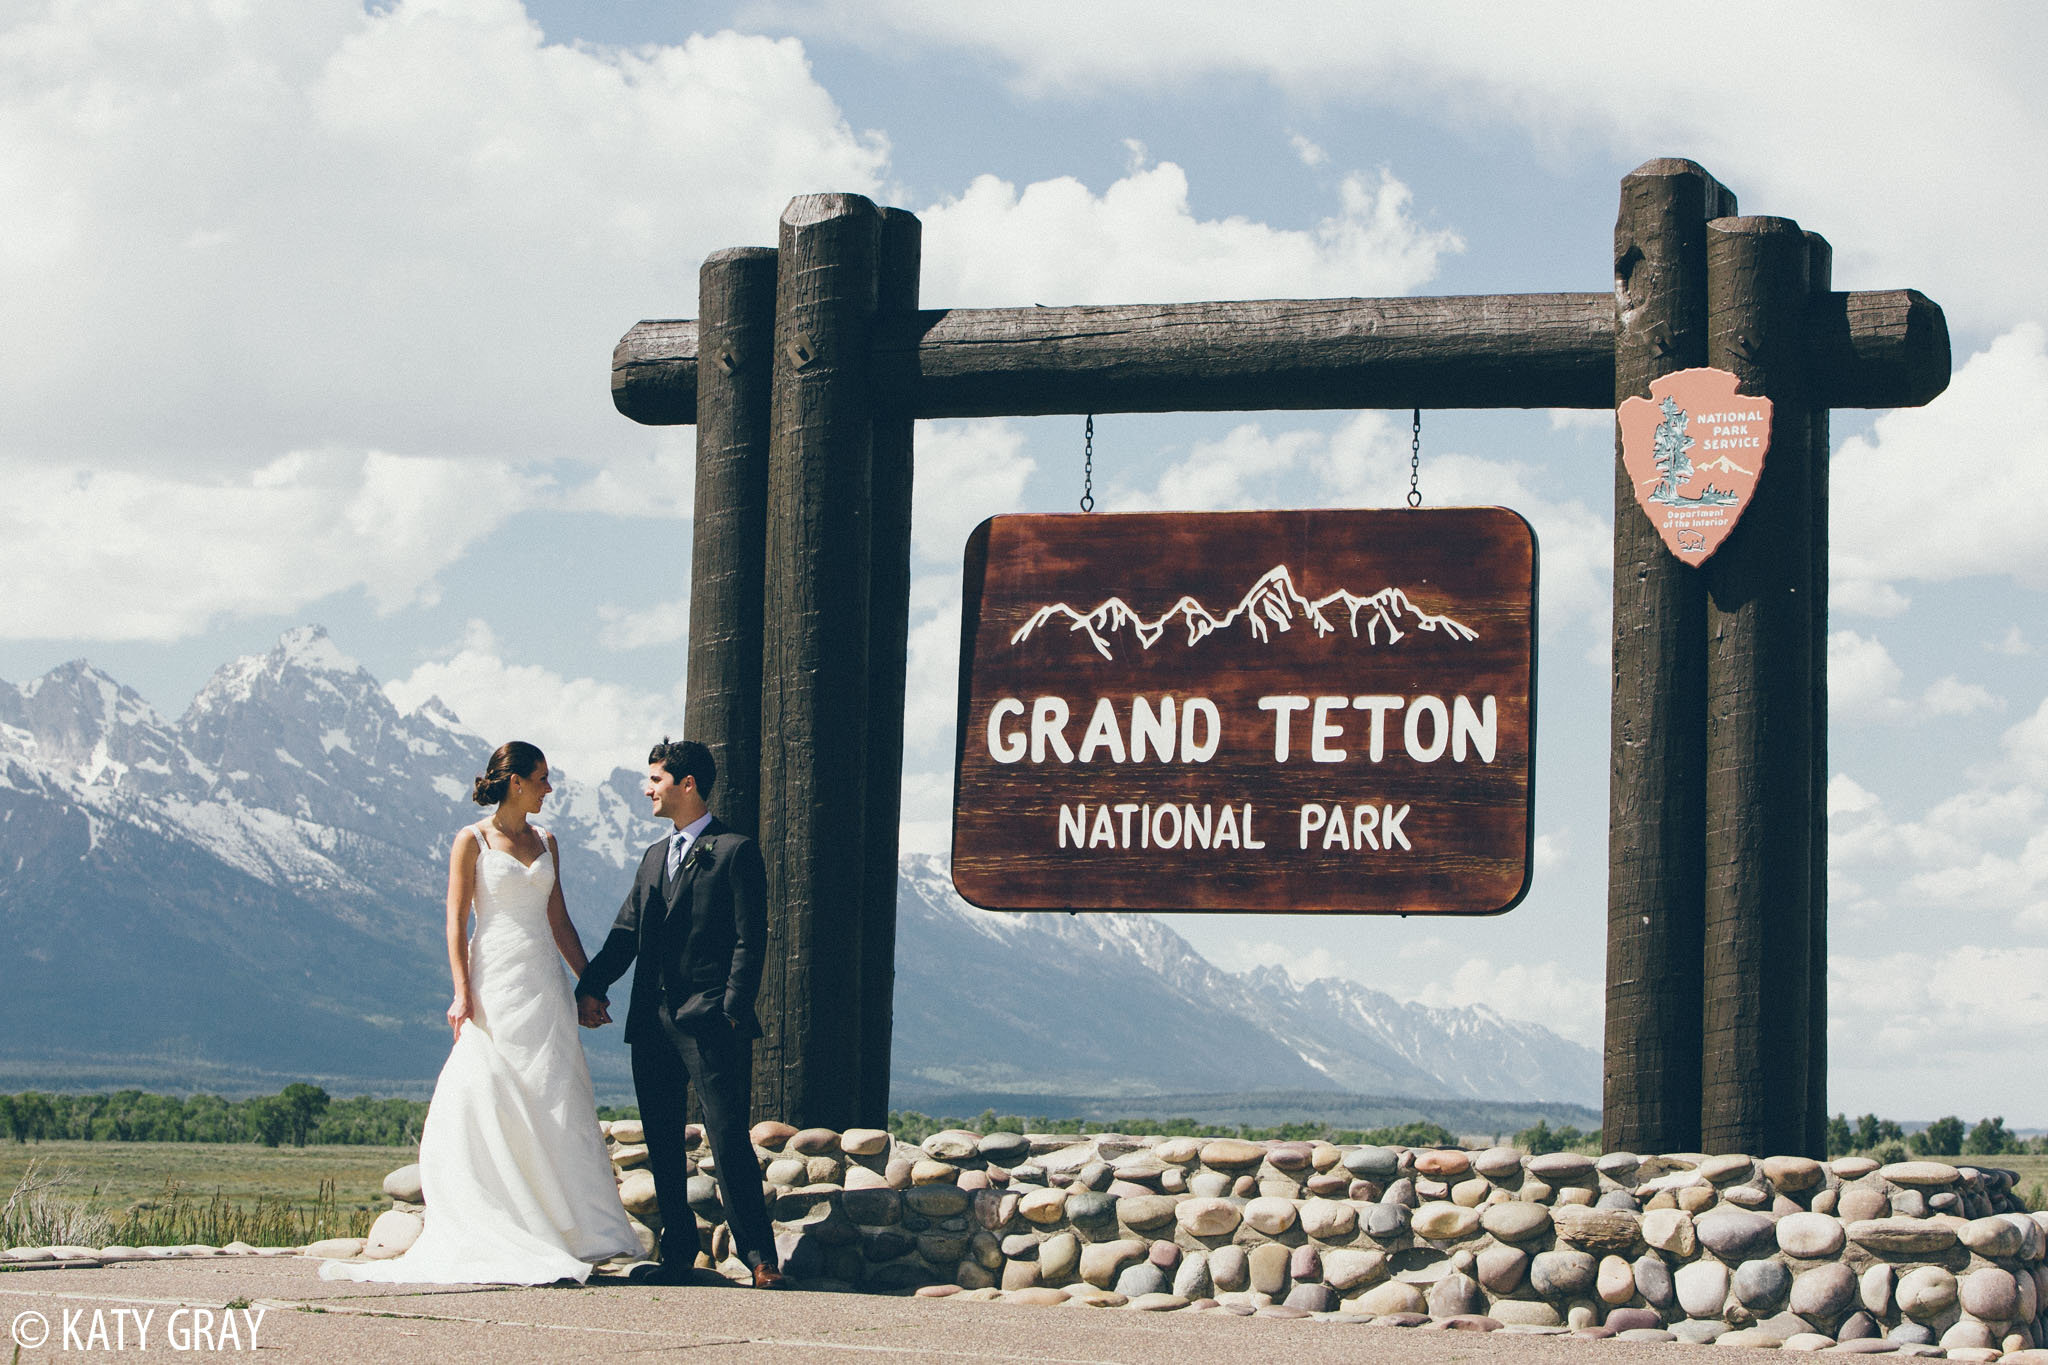 Grand Teton National Park wedding photos